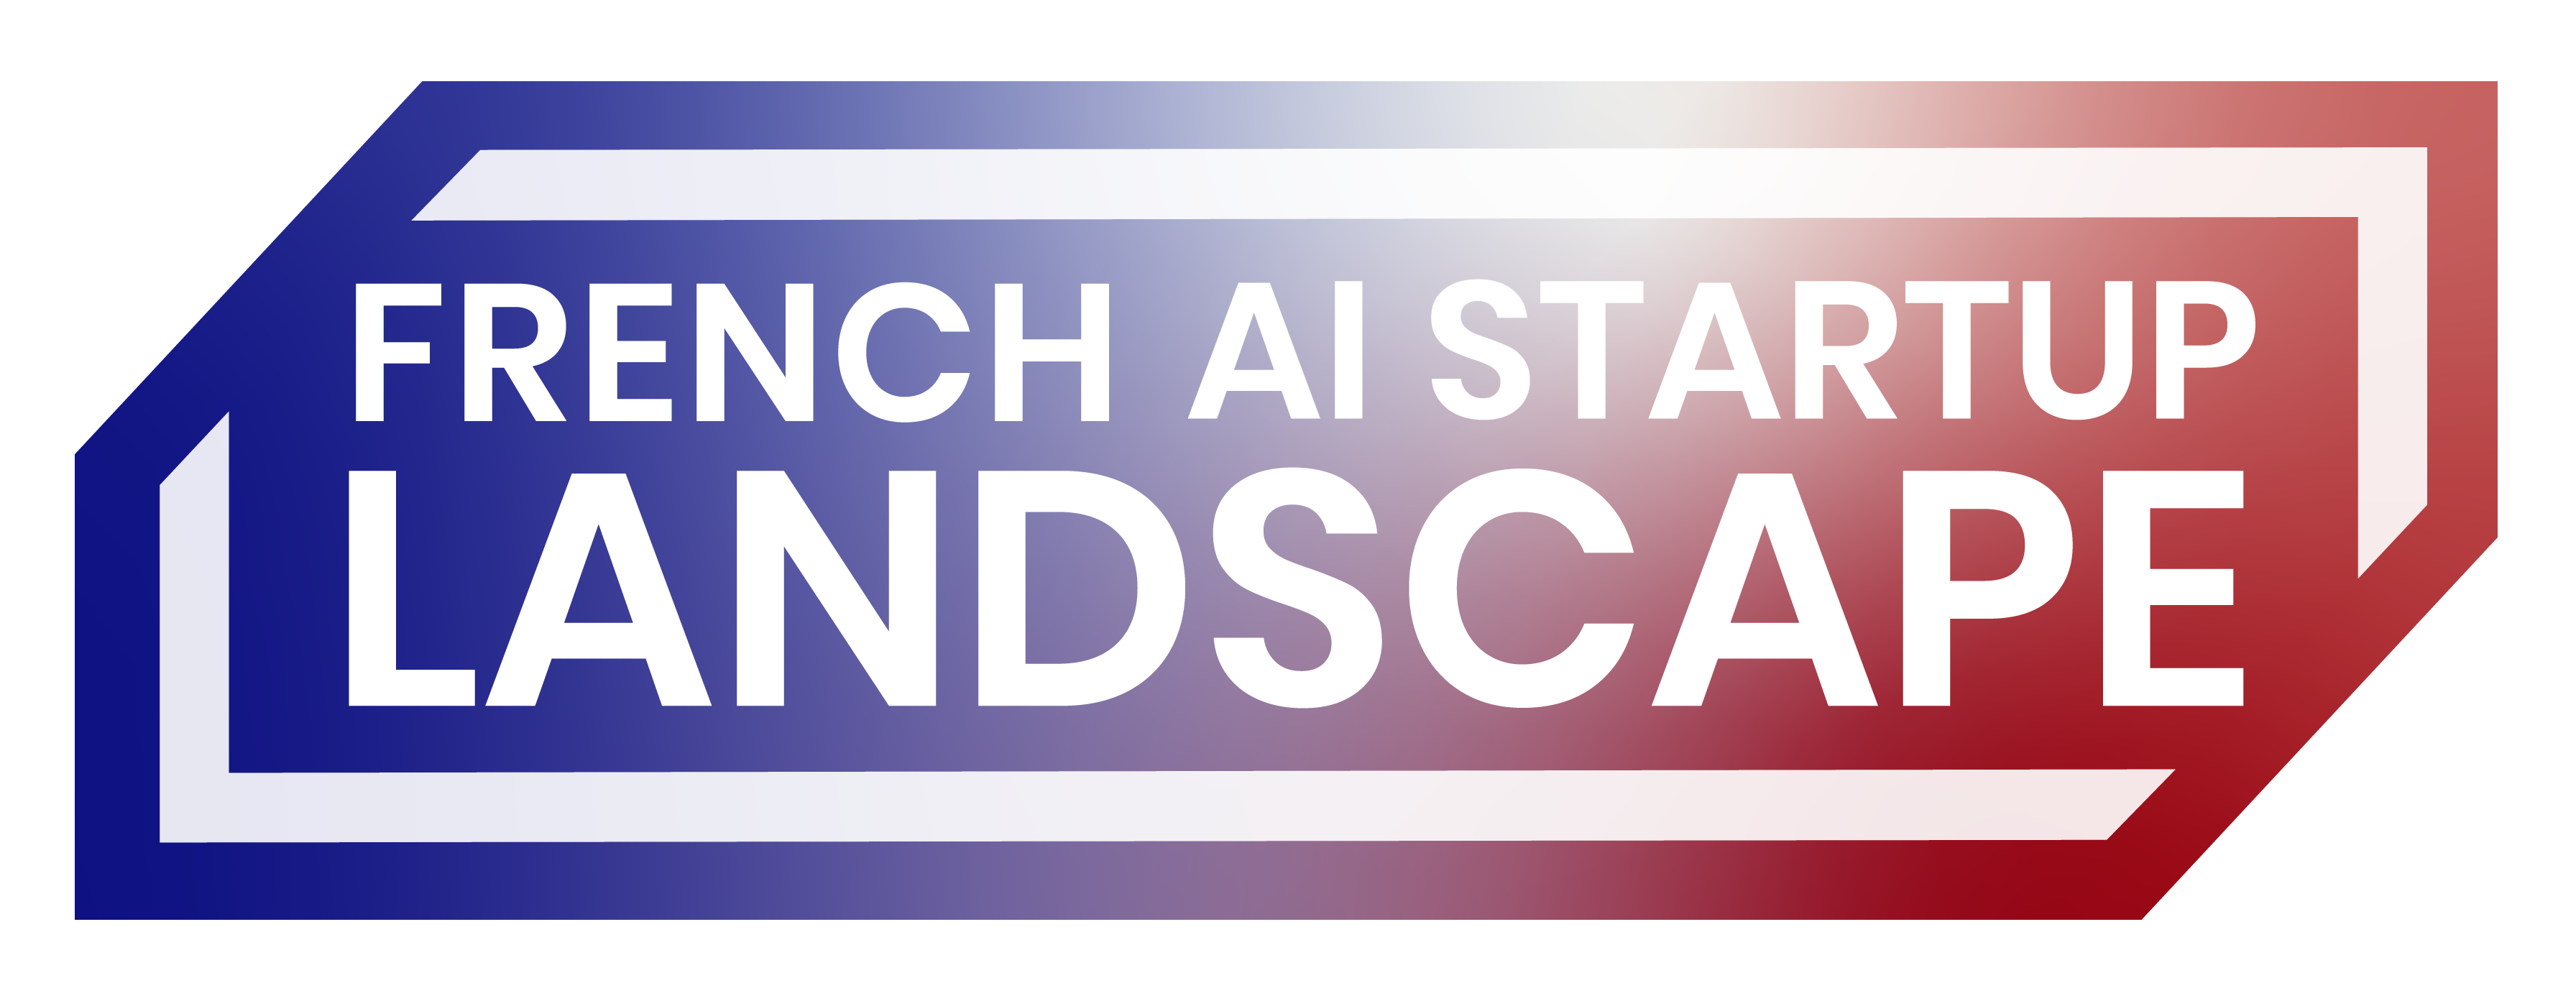 The best AI Startups in France